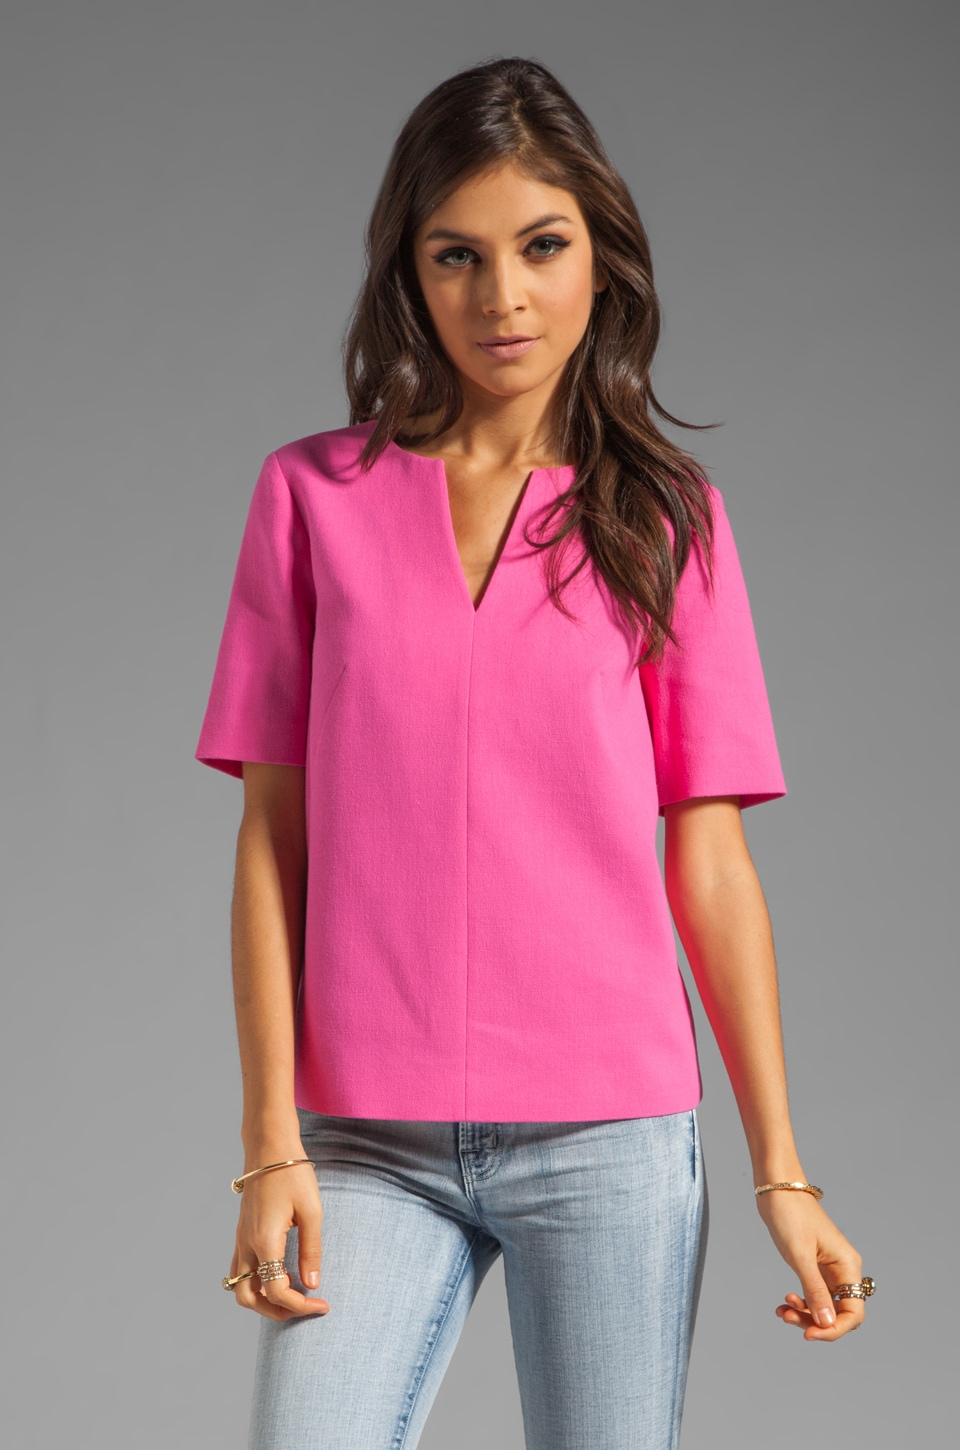 Tibi Willa Crepe Easy Top in Neon Pink